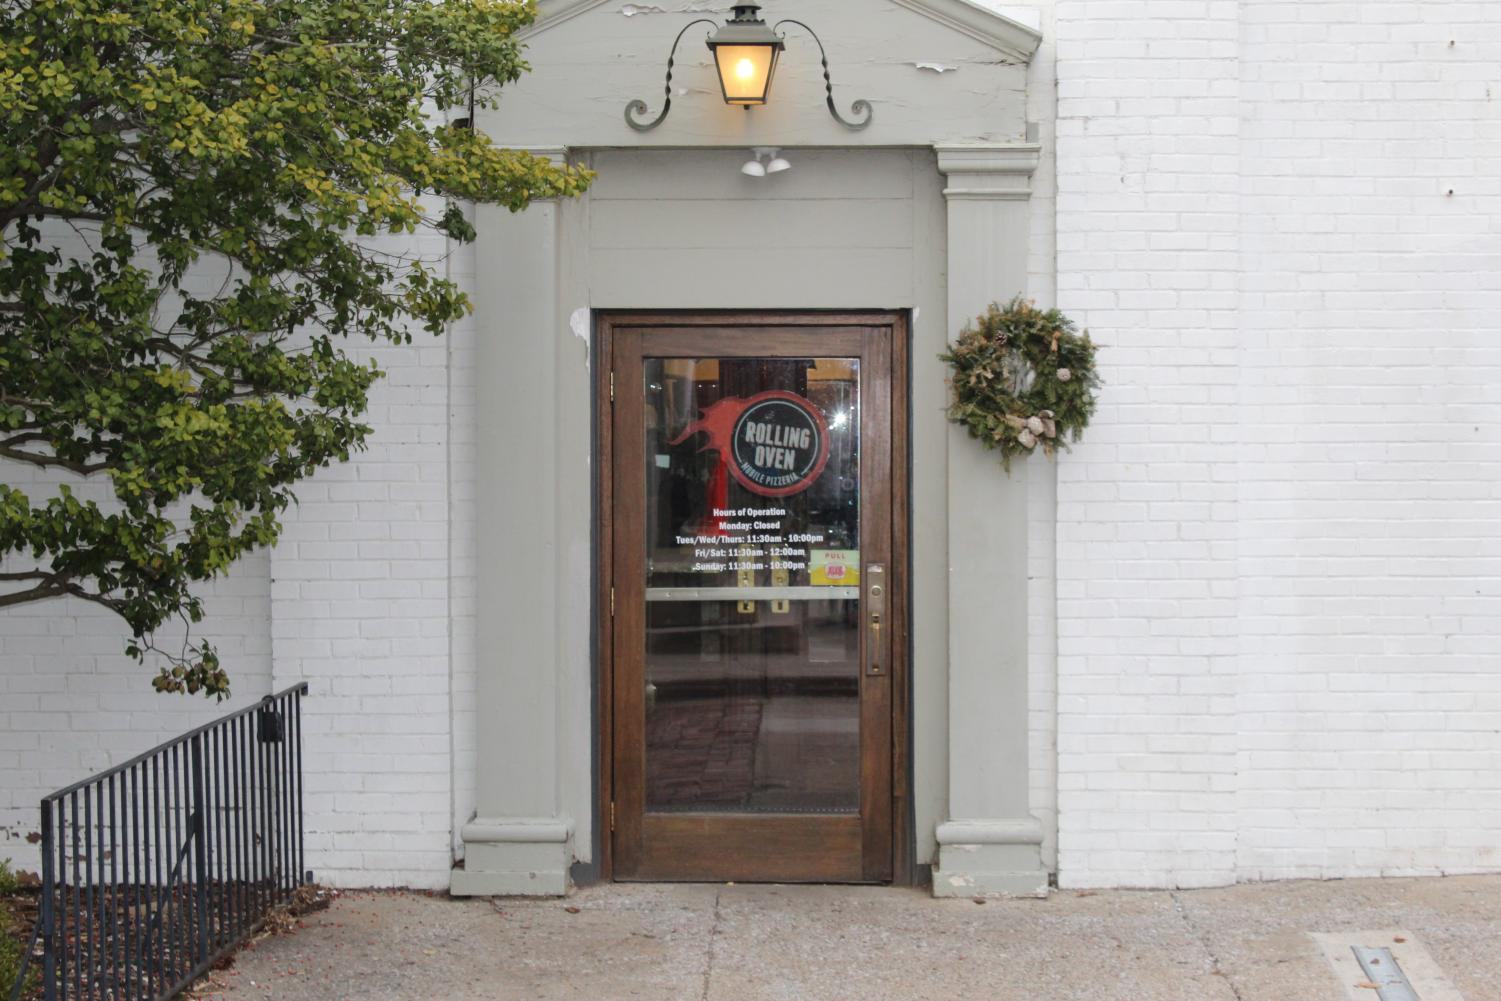 The entry of Rolling Oven located at 140 Court St. in Versailles.